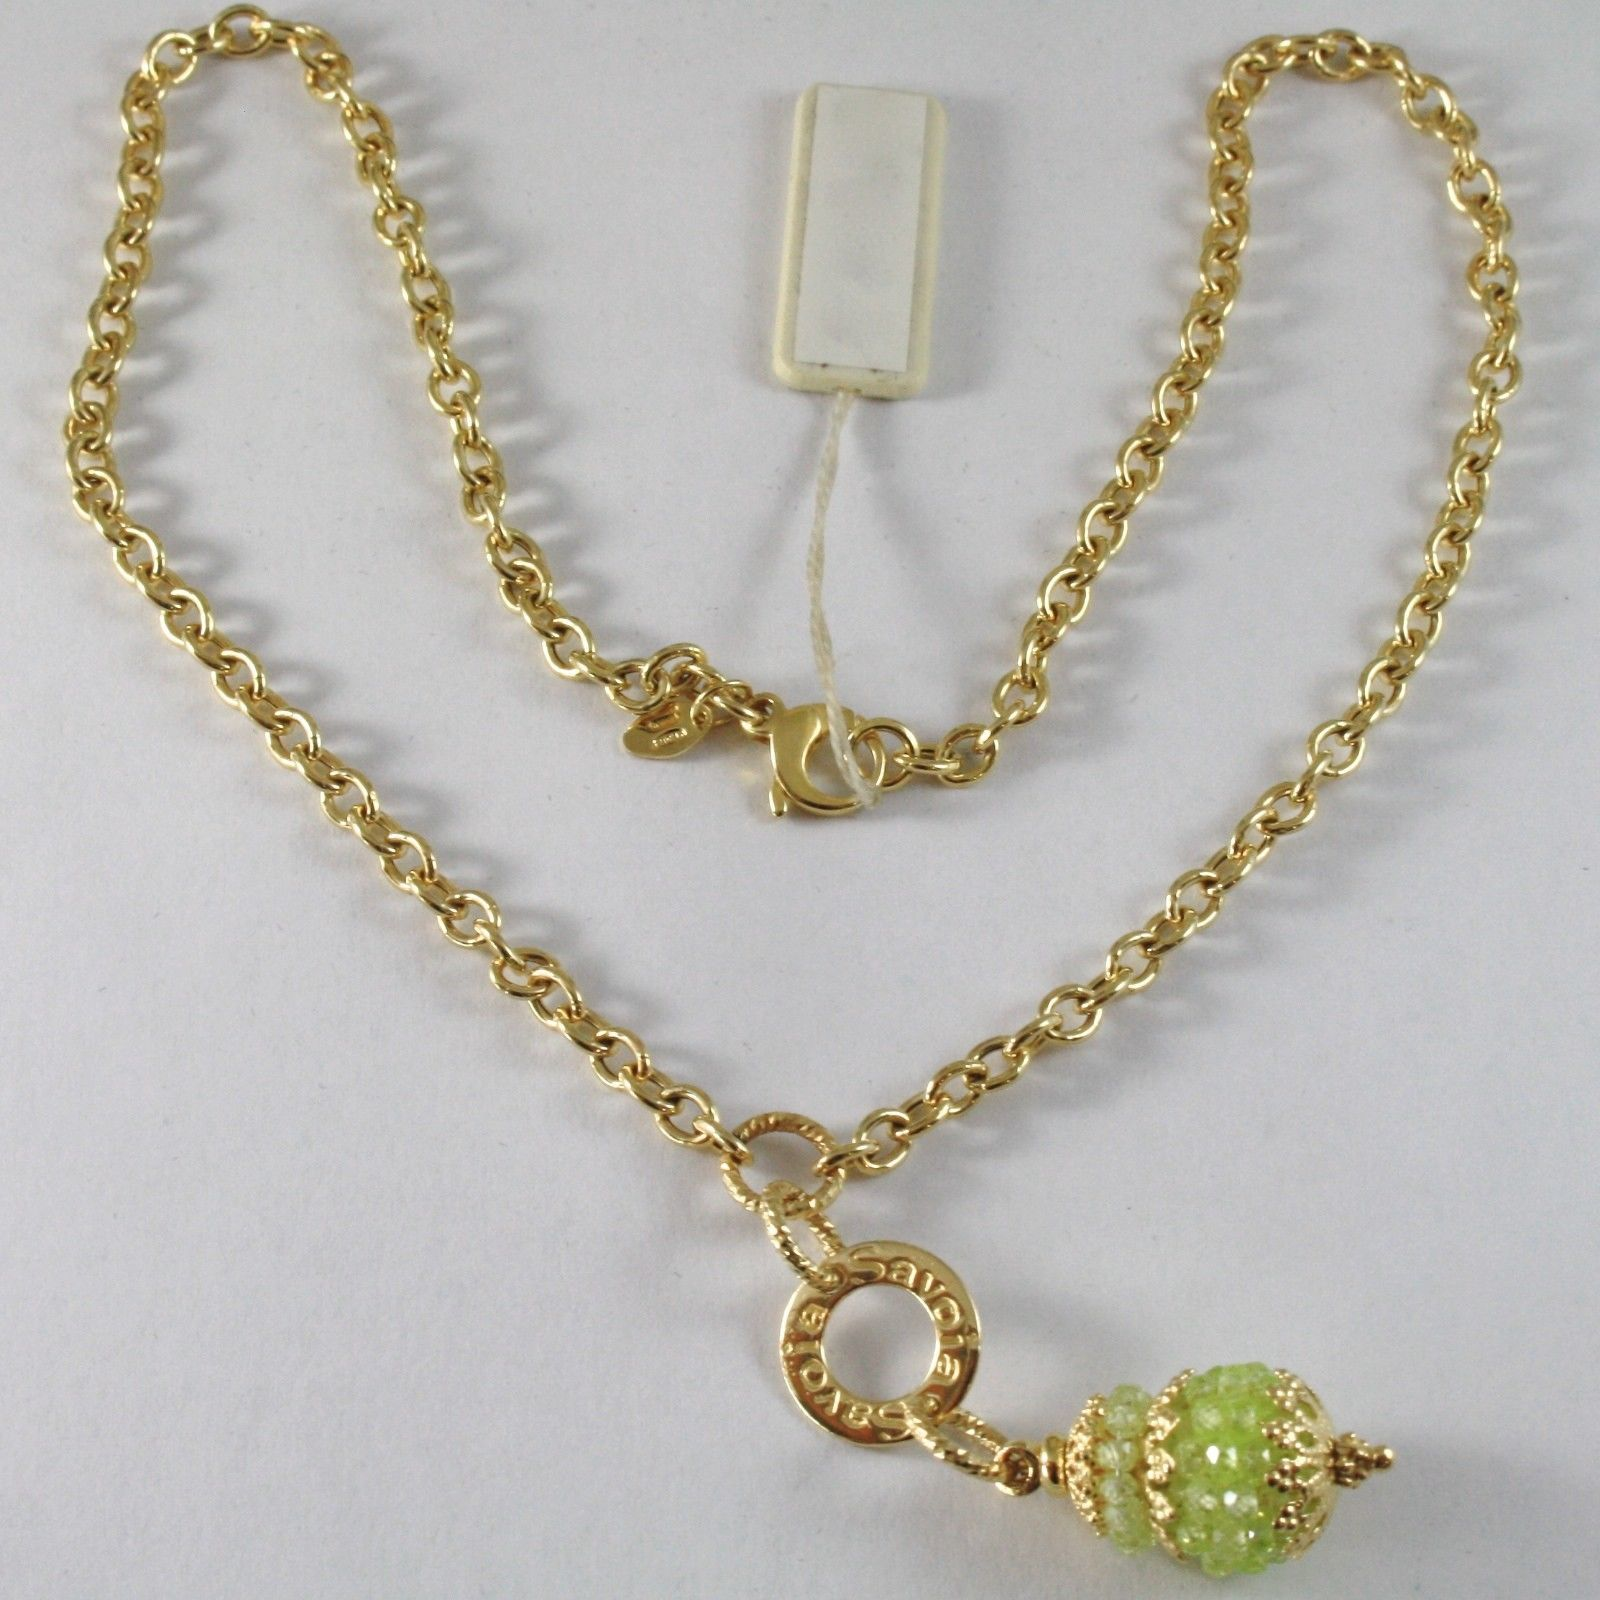 SILVER 925 NECKLACE YELLOW GOLD PLATED WITH HANGING CHARM MILLED AND PERIDOT